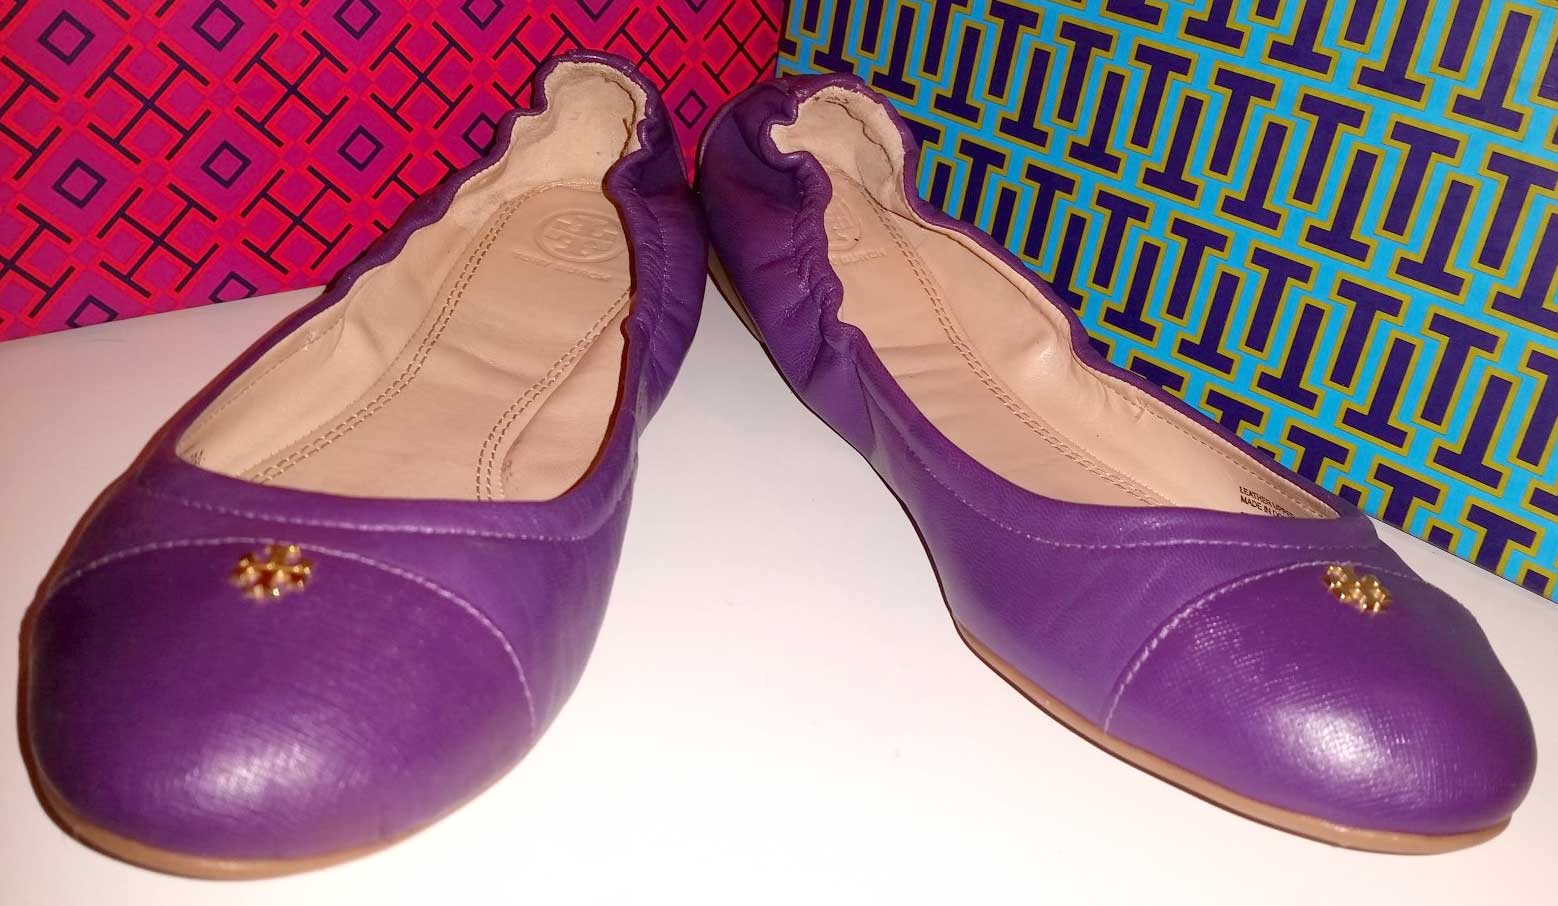 Tory Burch Ballet Size 10 Made in Dominican Republic